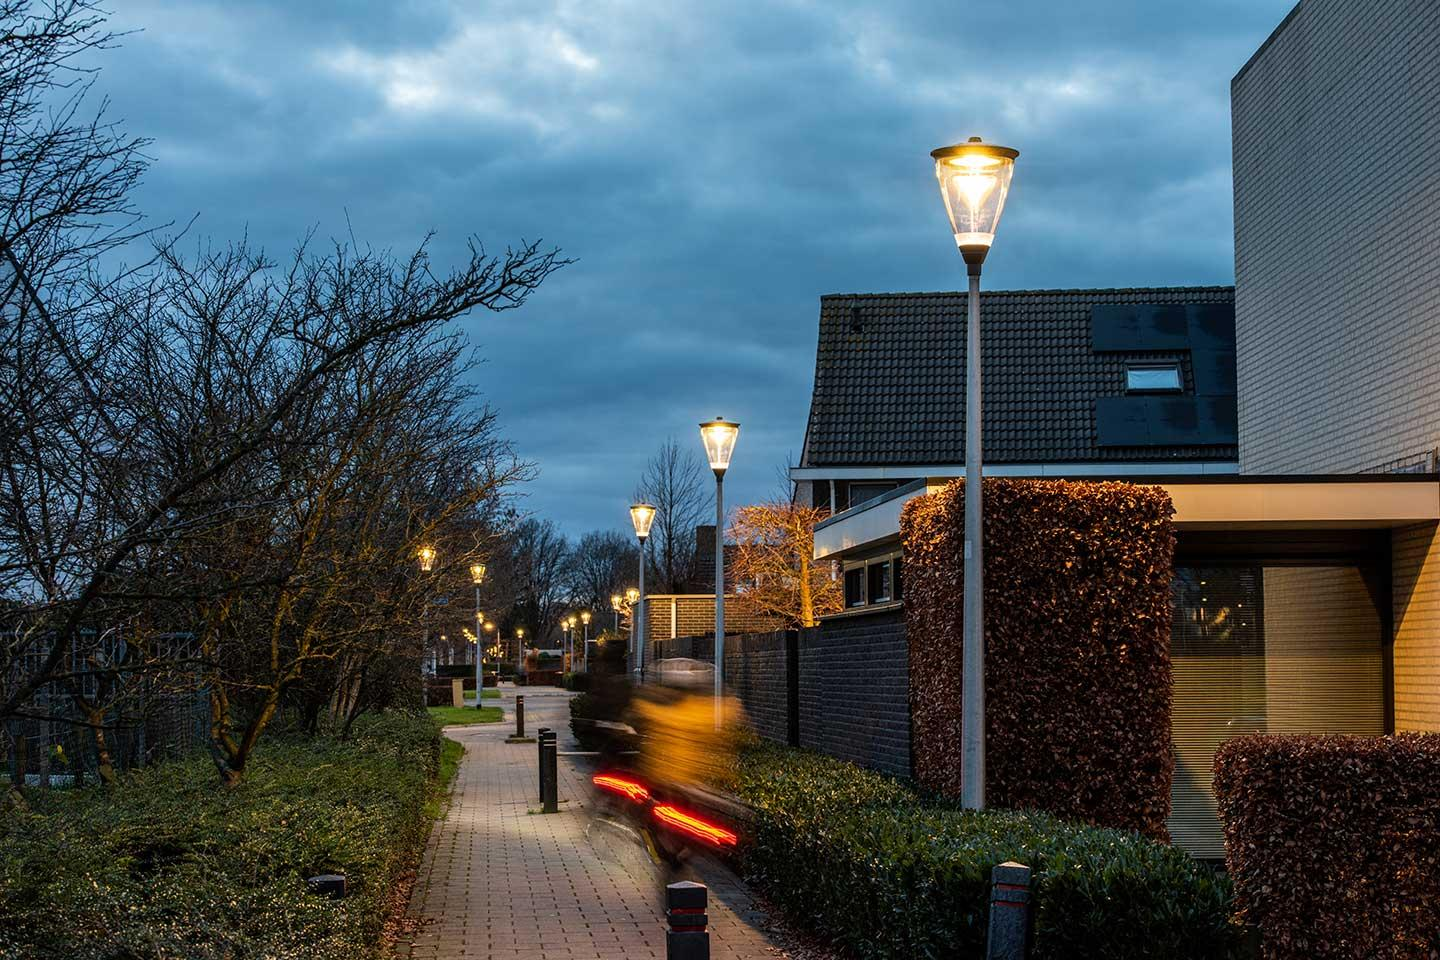 The modularity of the FLEXIA will enable the city of Tilburg to roll out the same platform across the city